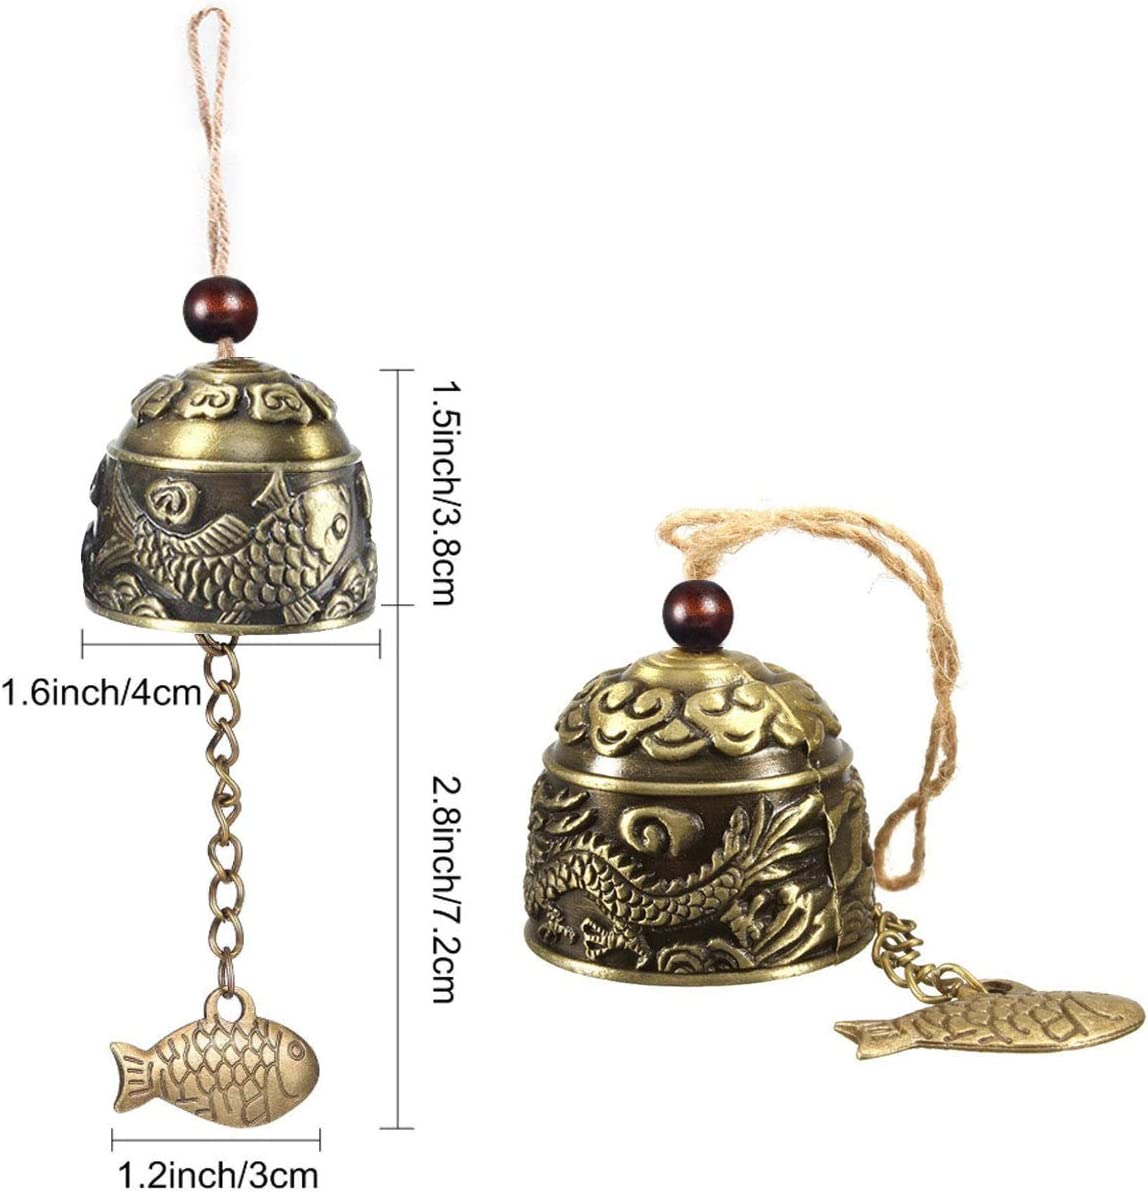 2 Pcs Hanging Bell Vintage Wind Chime Brass Metal Bell Chinese Traditional Dragon Feng Shui Ornament Bell for Home Car Garden Good Luck Blessing Crafts Christmas Hanging Decor Gift